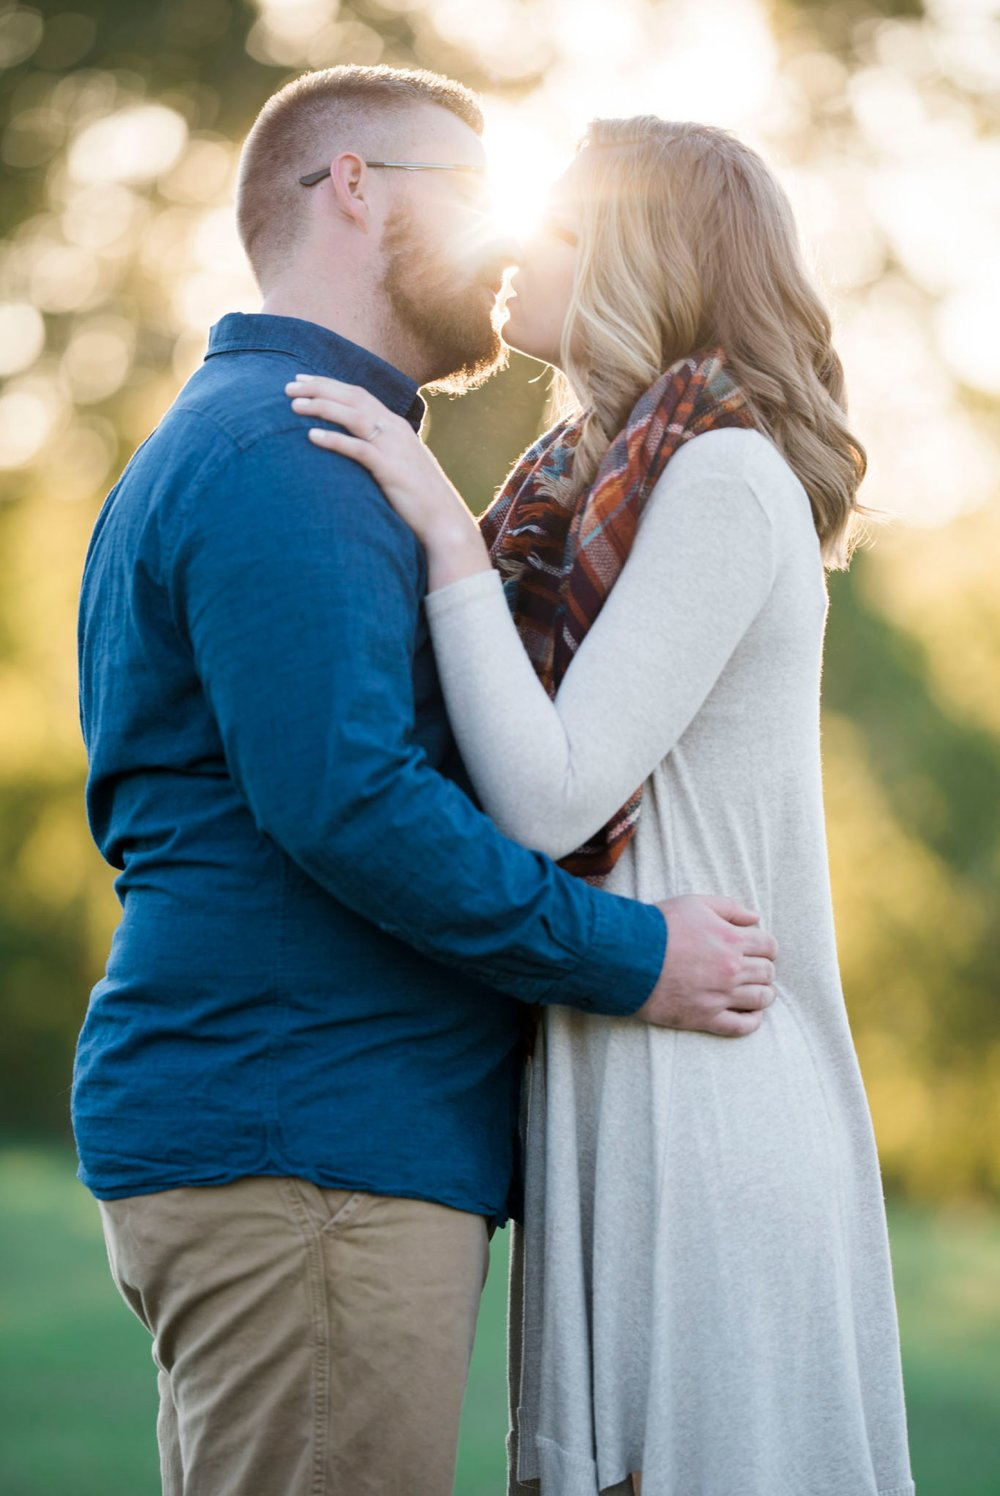 engagementsession_vaweddingphotographer 17.jpg